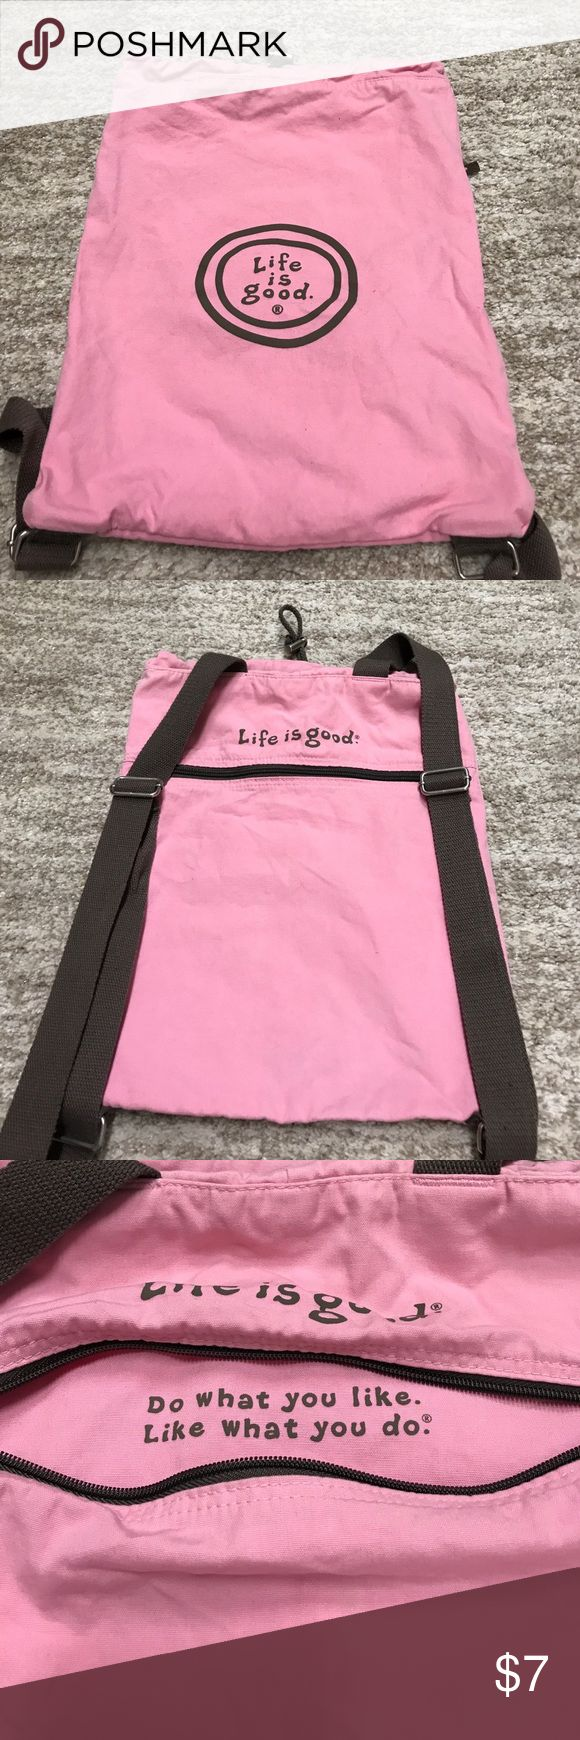 Life is Good backpack Pink cloth backpack with adjustable straps. No holes or tears but has some wear on corner. See last picture. Life is Good Bags Backpacks